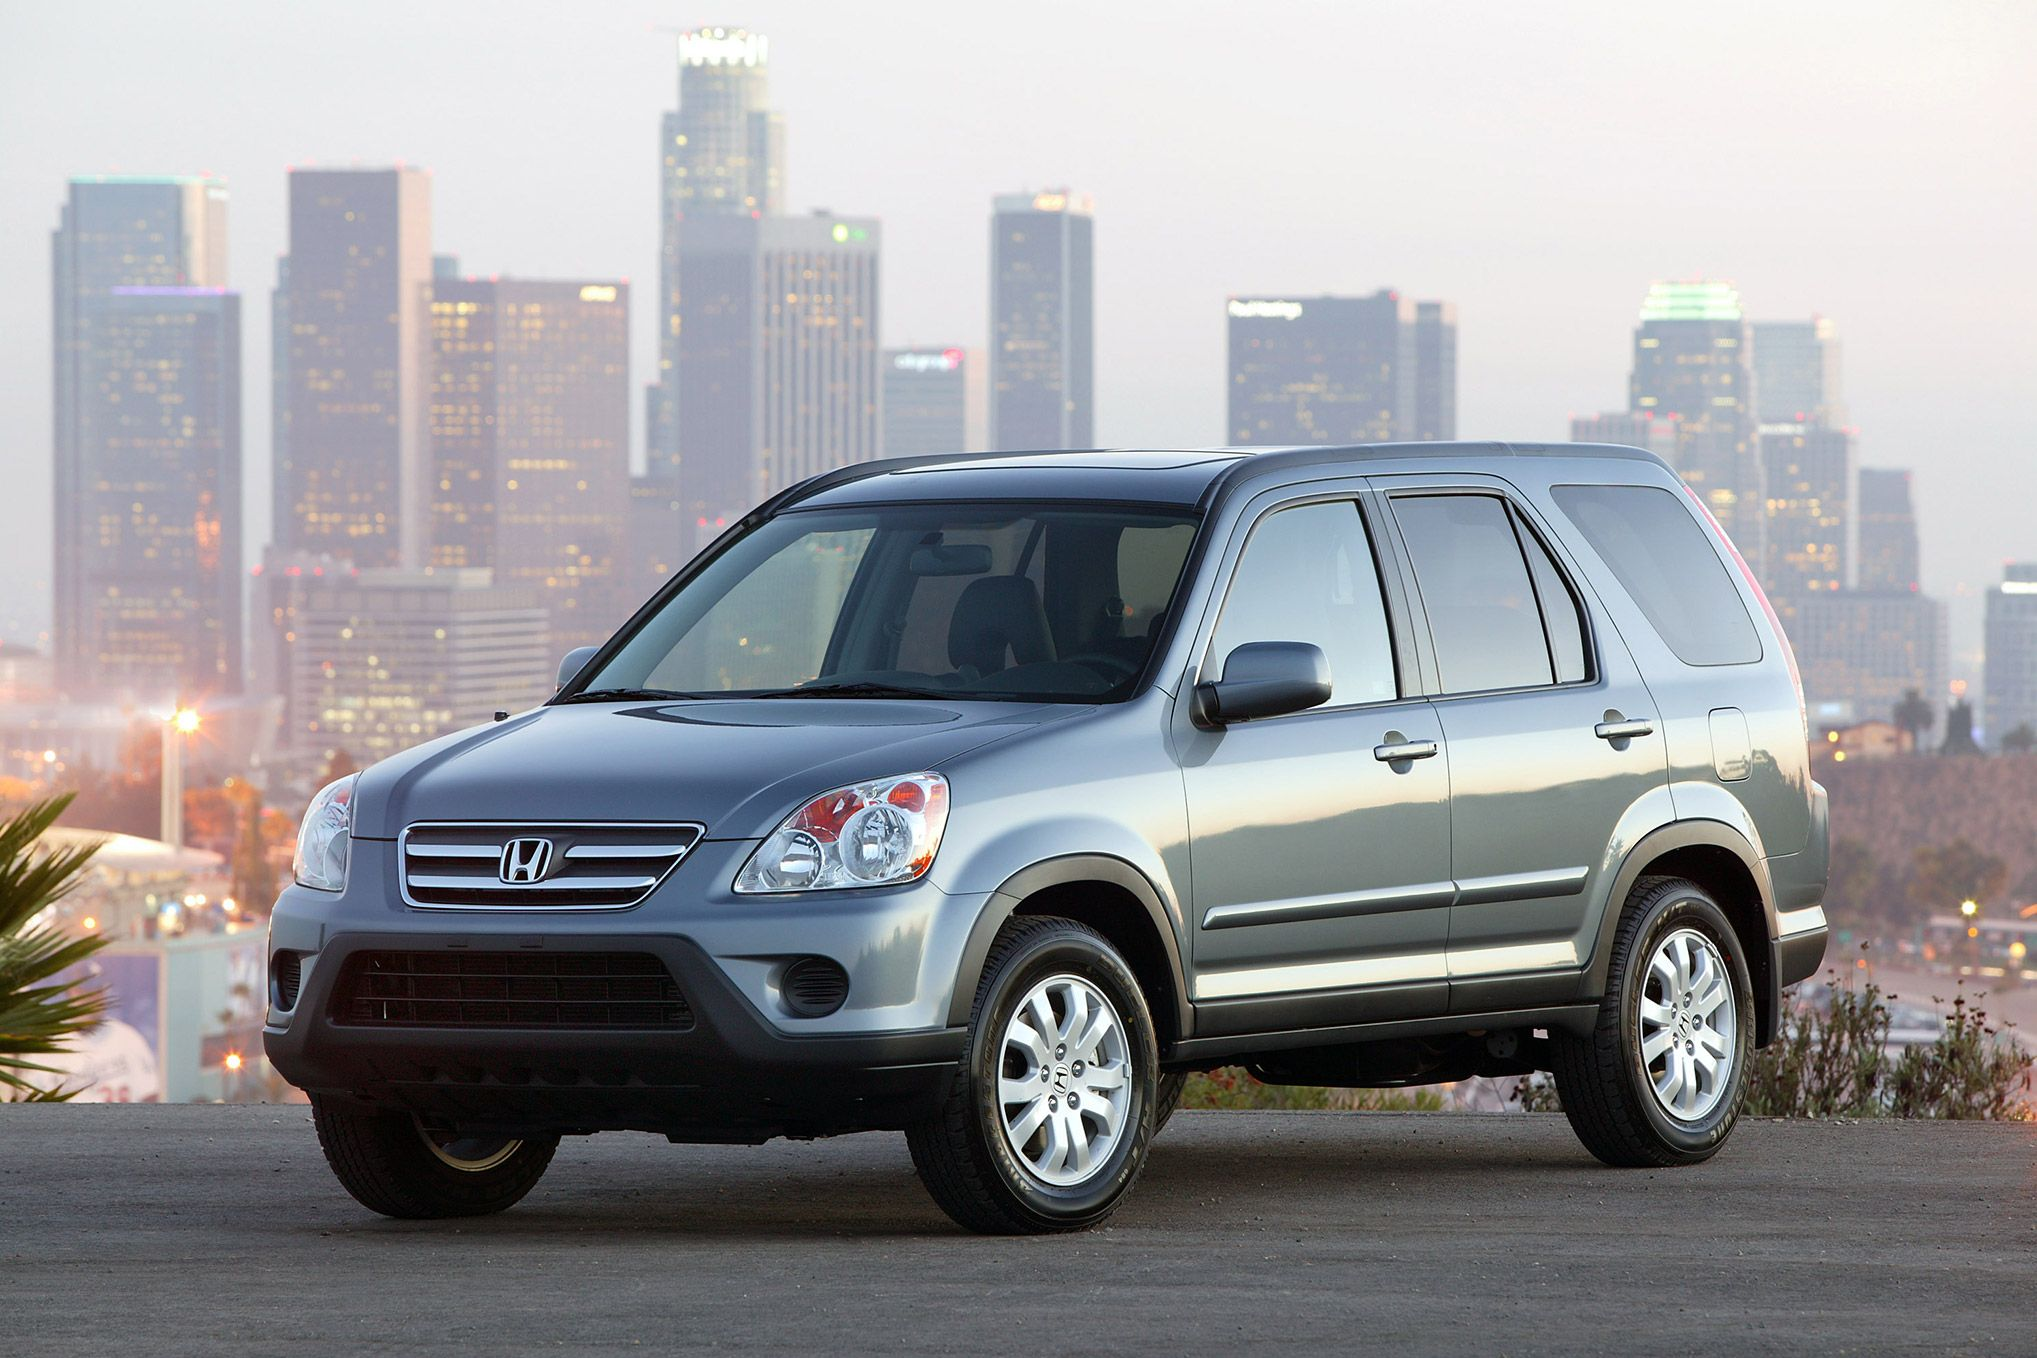 Best Used Cars Under $10,000 - Consumer Reports | Buying